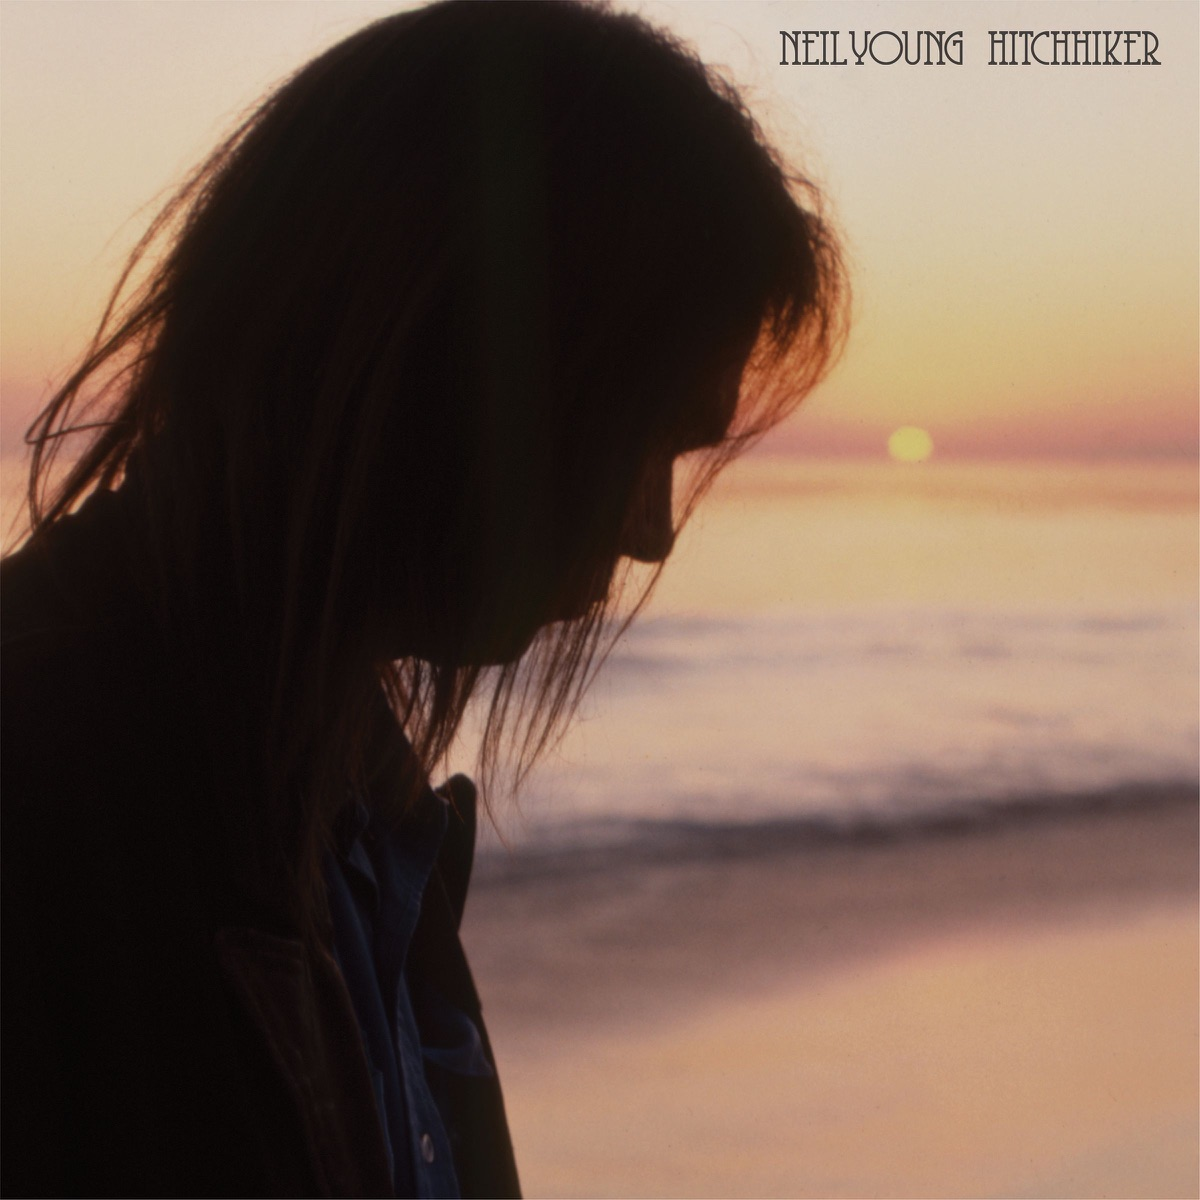 Hitchhiker Neil Young CD cover